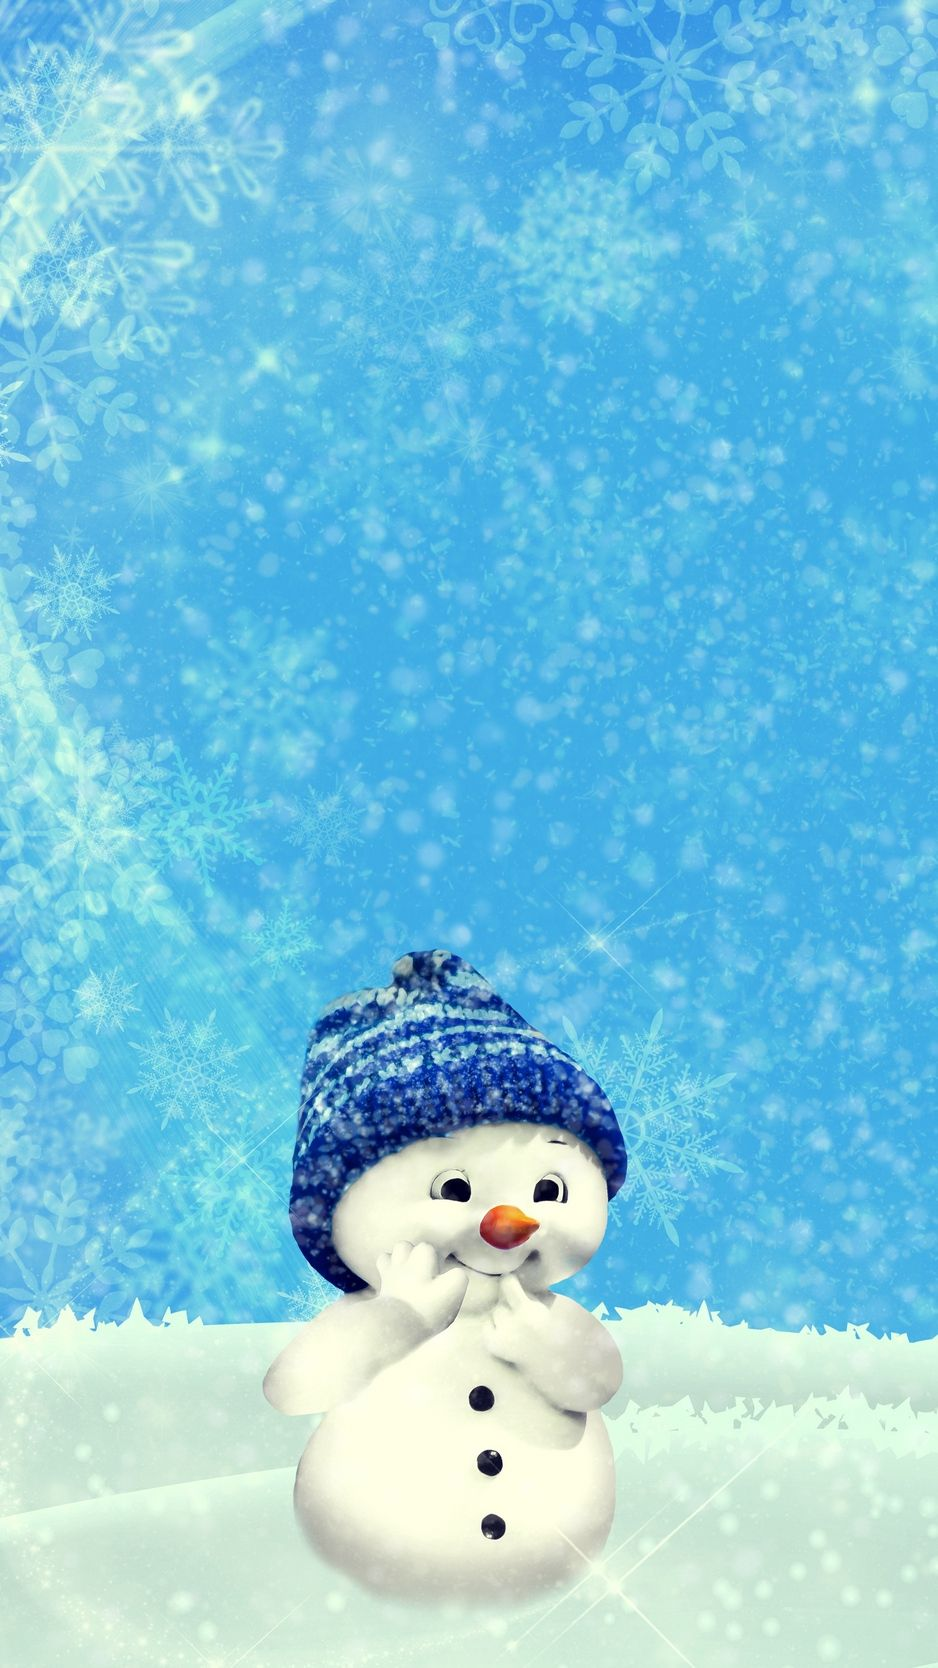 Inspiring Iphone And Ipad Wallpapers For January Ipad Wallpaper Winter Wallpaper Wallpaper